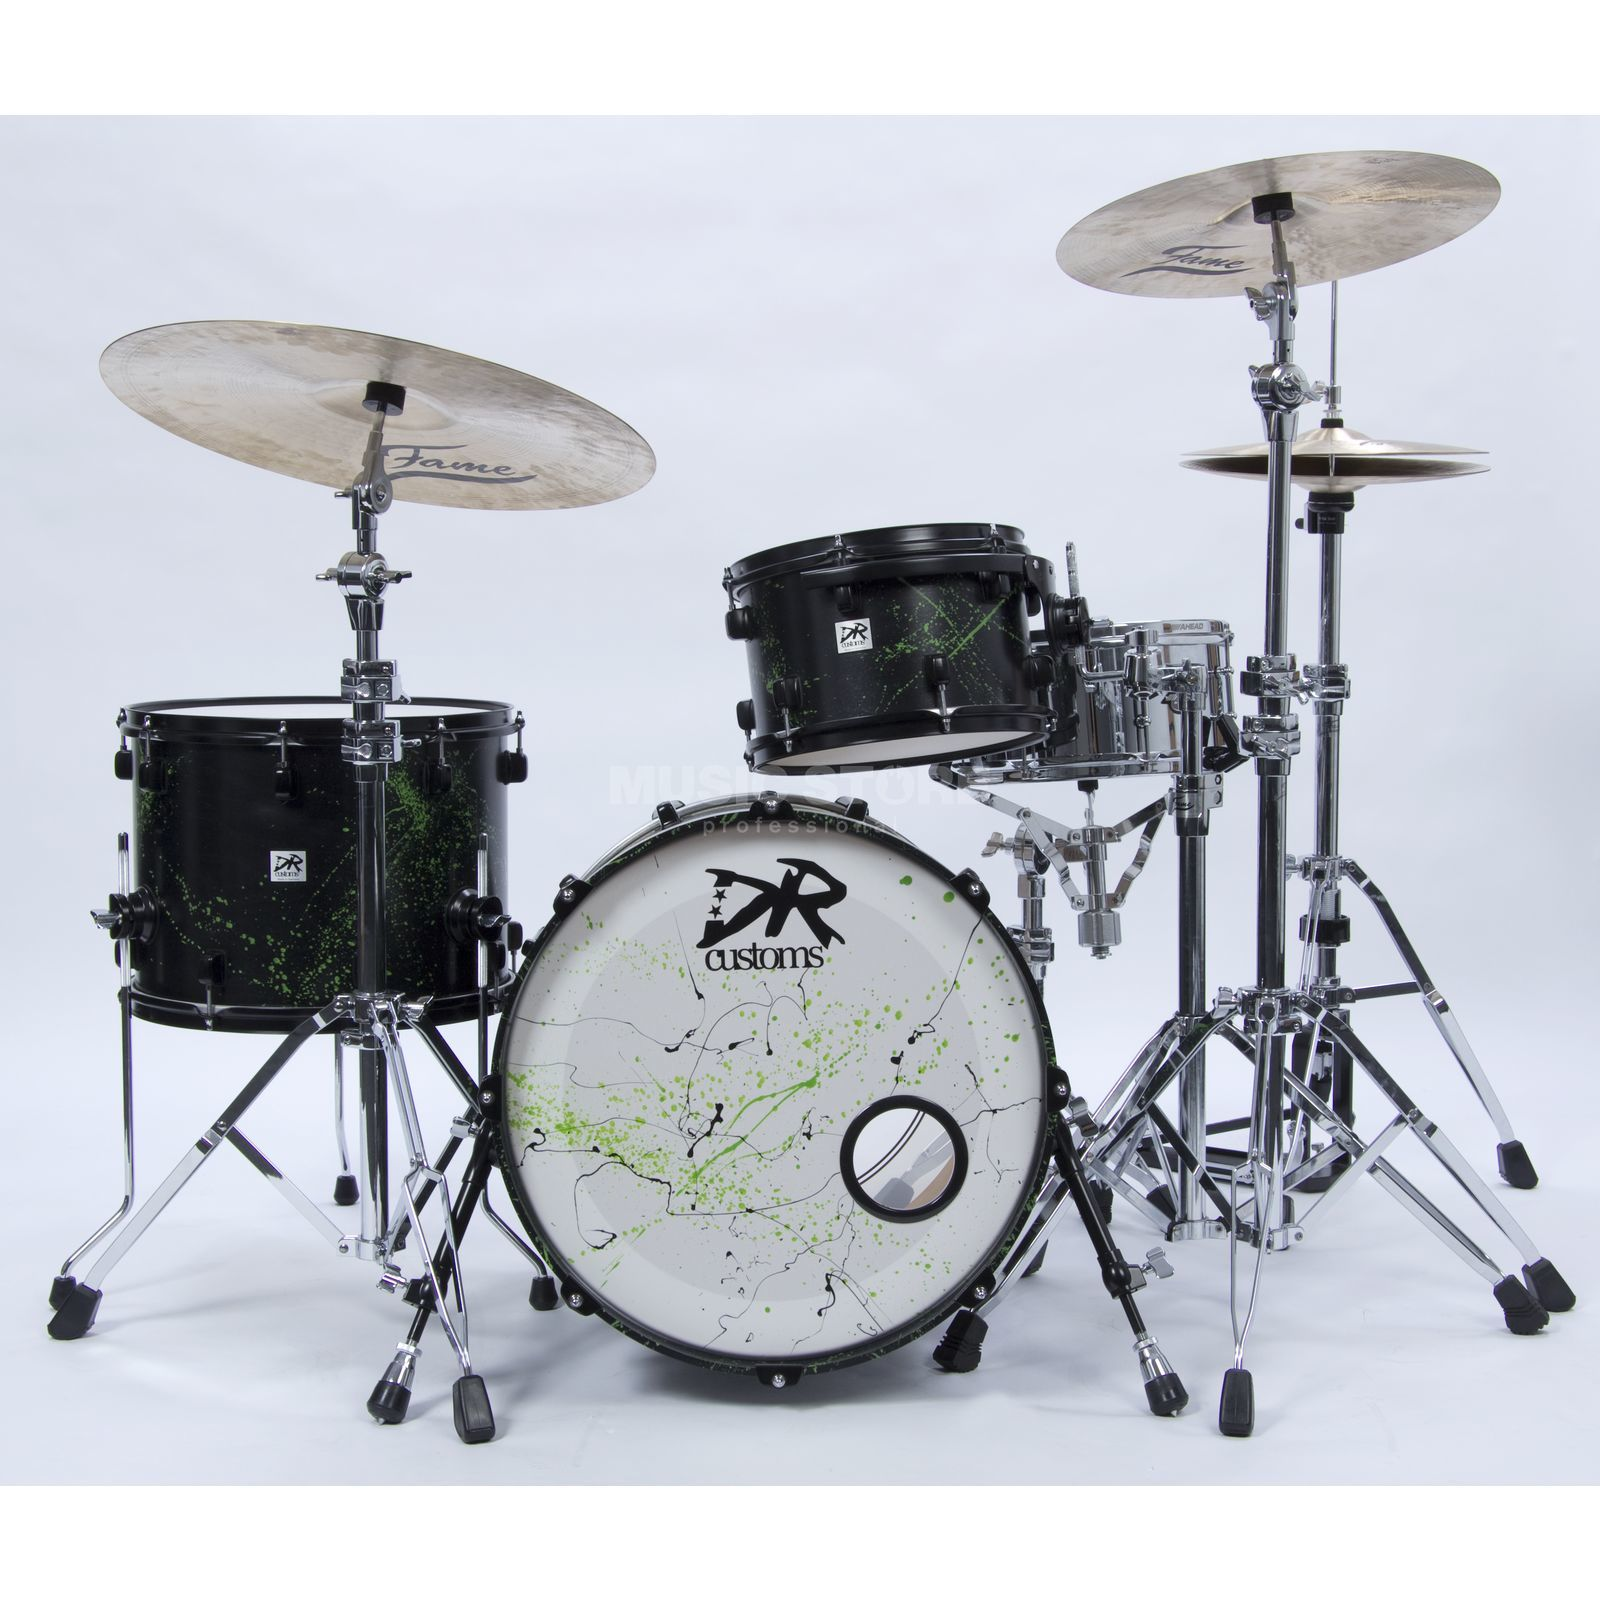 DR Customs Splatter ShellSet, #Black Satin, Green Splatter Produktbild